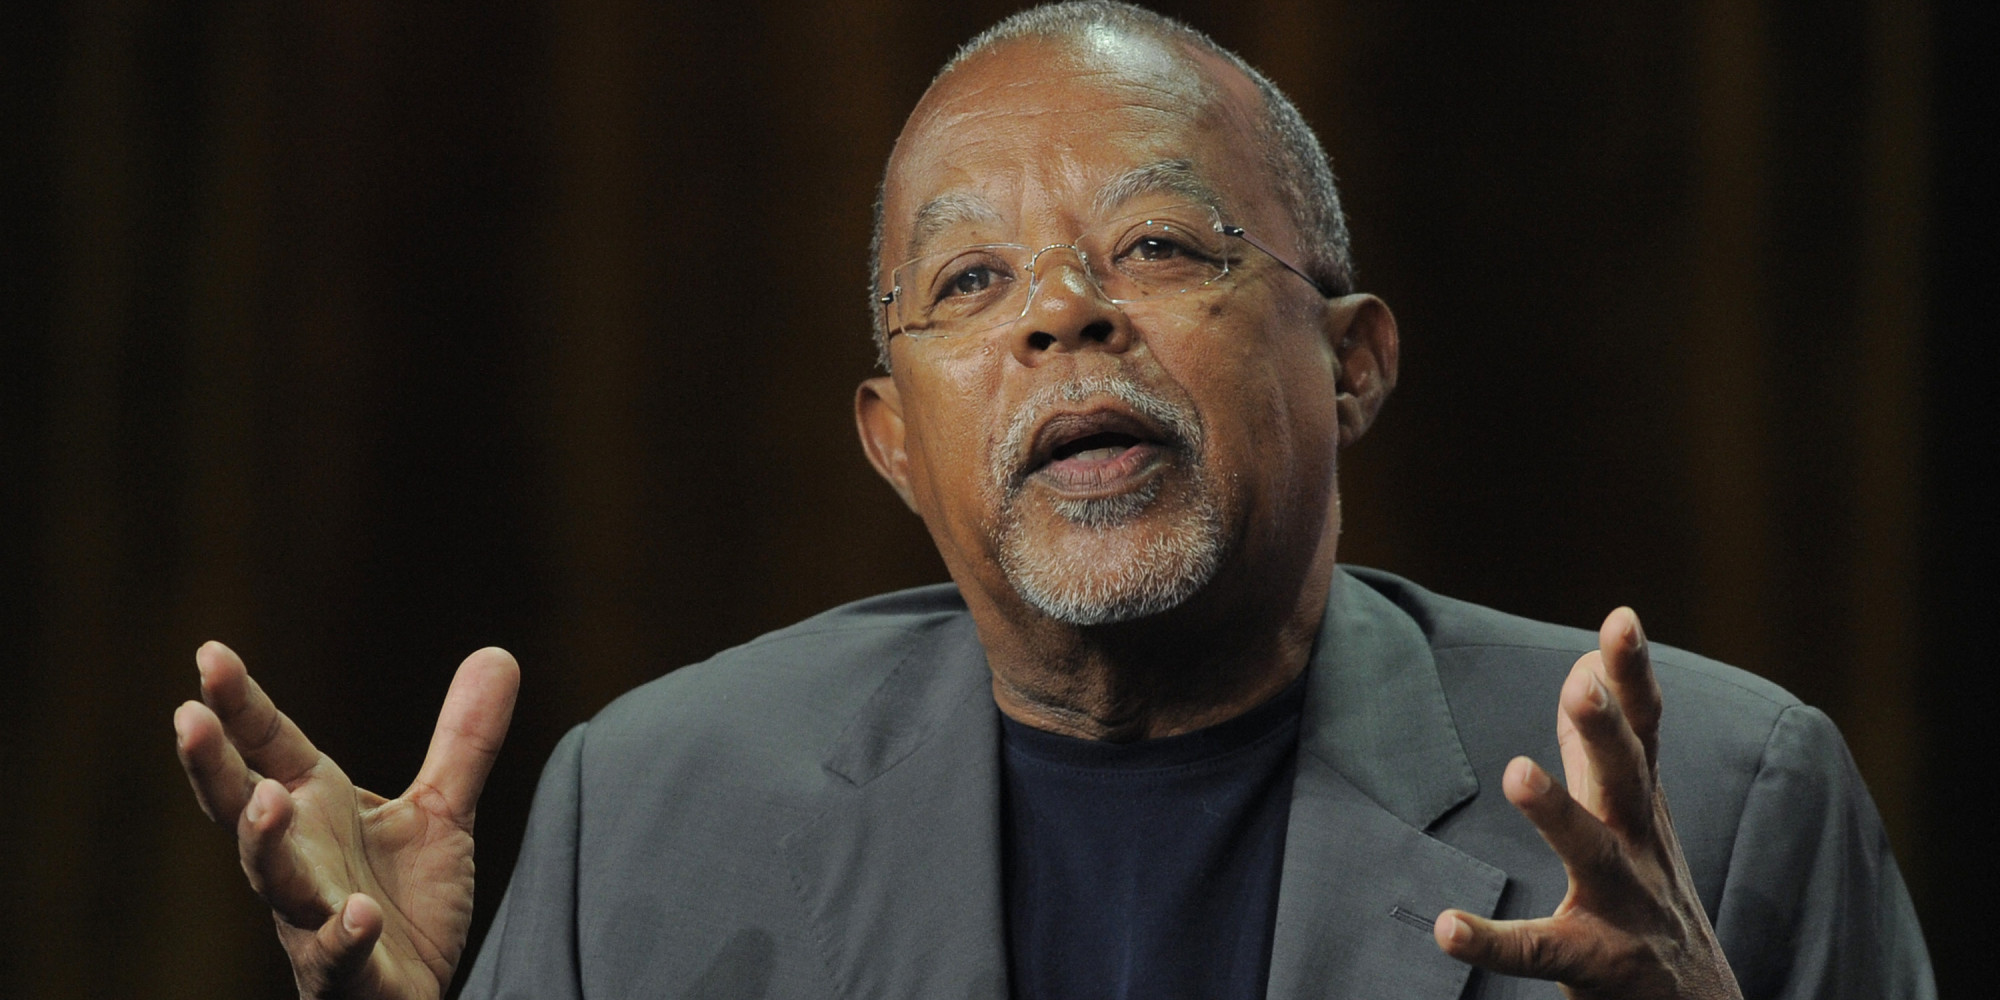 henry louis gates jr in the kitchen Henry louis skip gates jr (born september 16, 1950 in keyser, west virginia) is an american literary critic, teacher, historian, filmmaker and public intellectual.